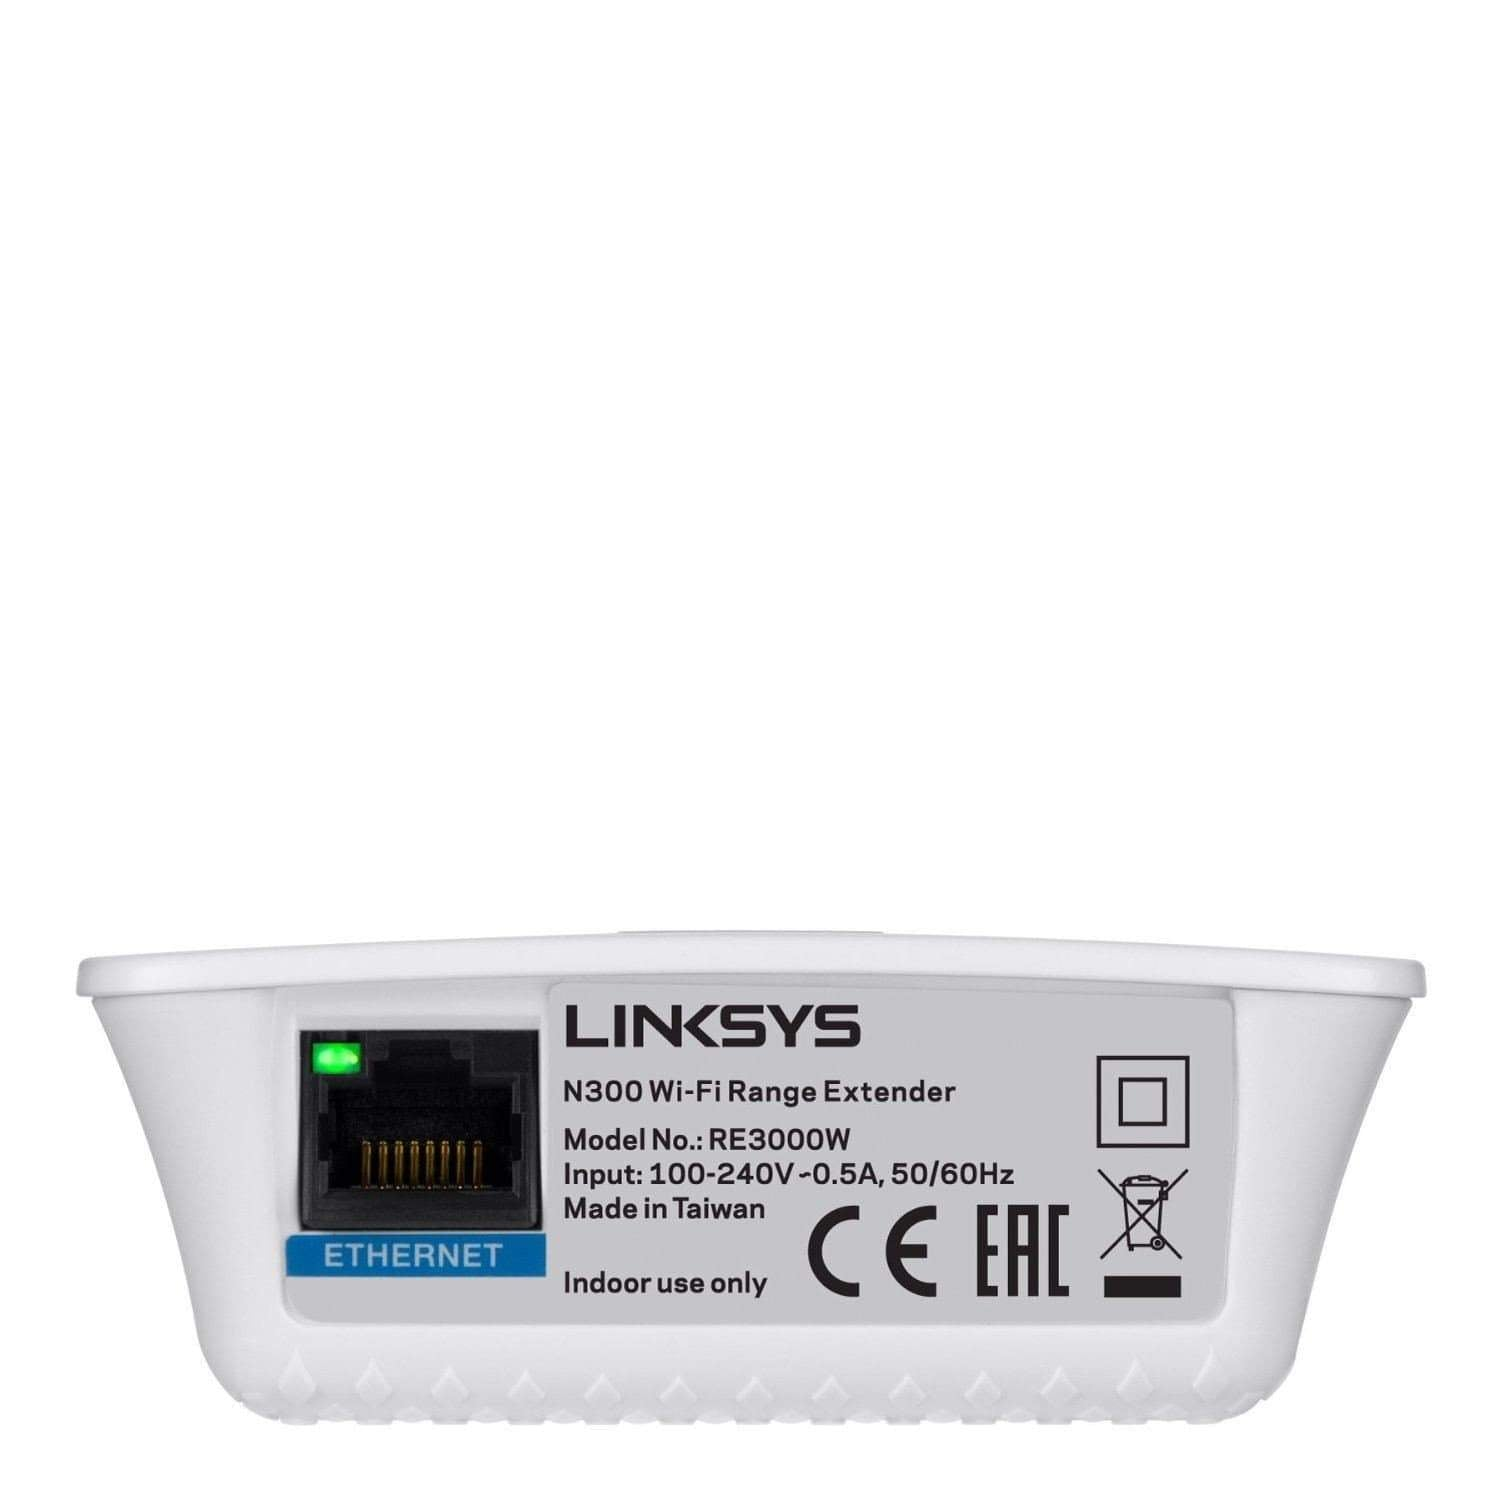 Linksys RE3000W N300 Wireless Single Band Range Extender